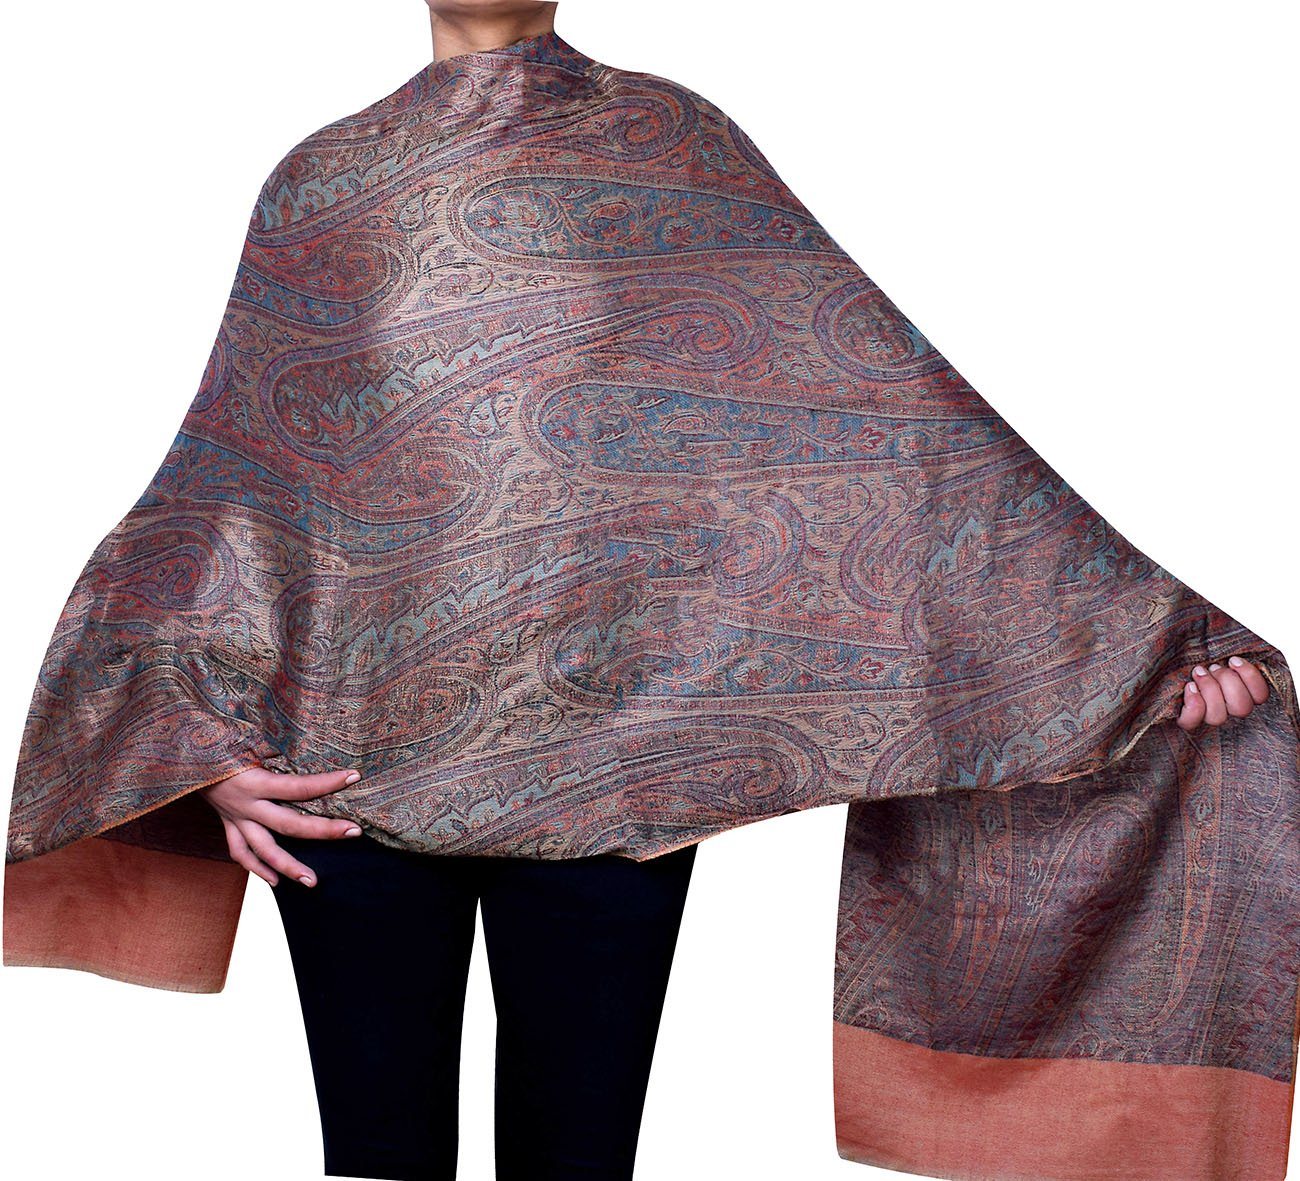 Gift Women's Paisley Wrap Wool Shawl India Clothes (80 x 40 inches) Maple Clothing shwl44183a